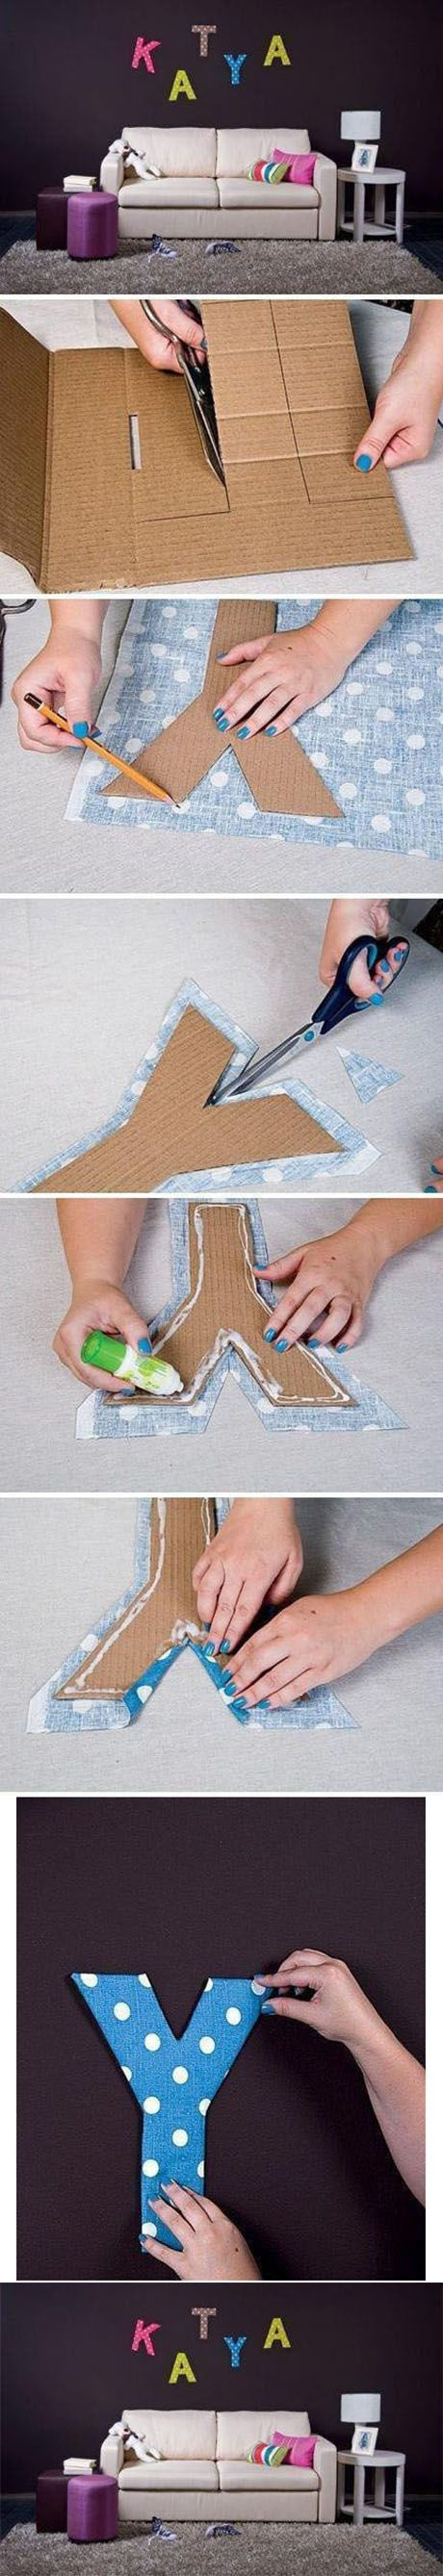 Great Letters Craft | DIY & Crafts Tutorials